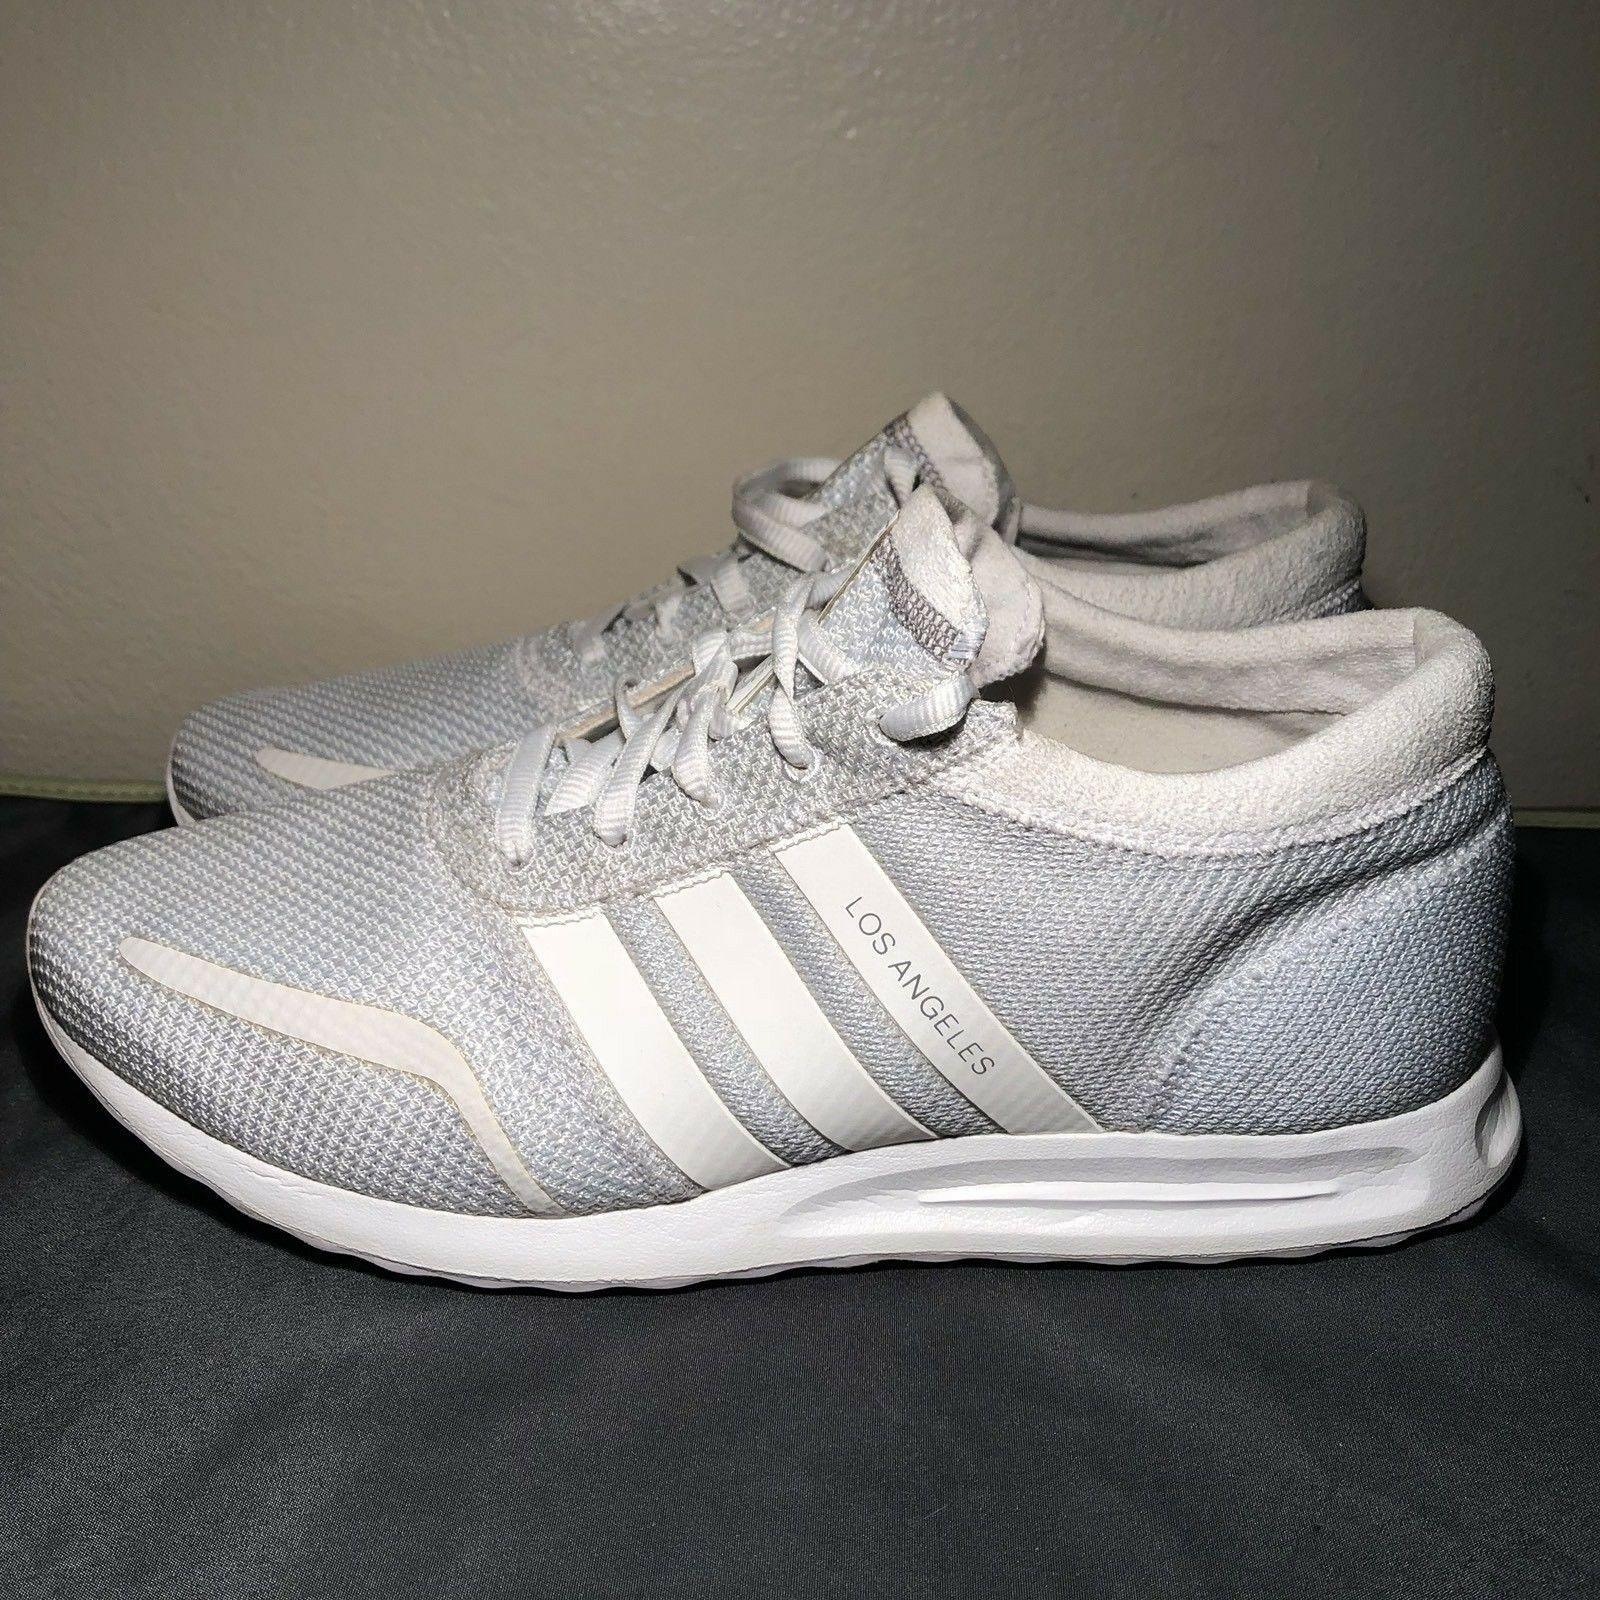 ADIDAS LOS 9.5 ANGELES Mens US Size 9.5 LOS Triple White S42021 Athletic Sneakers c37484